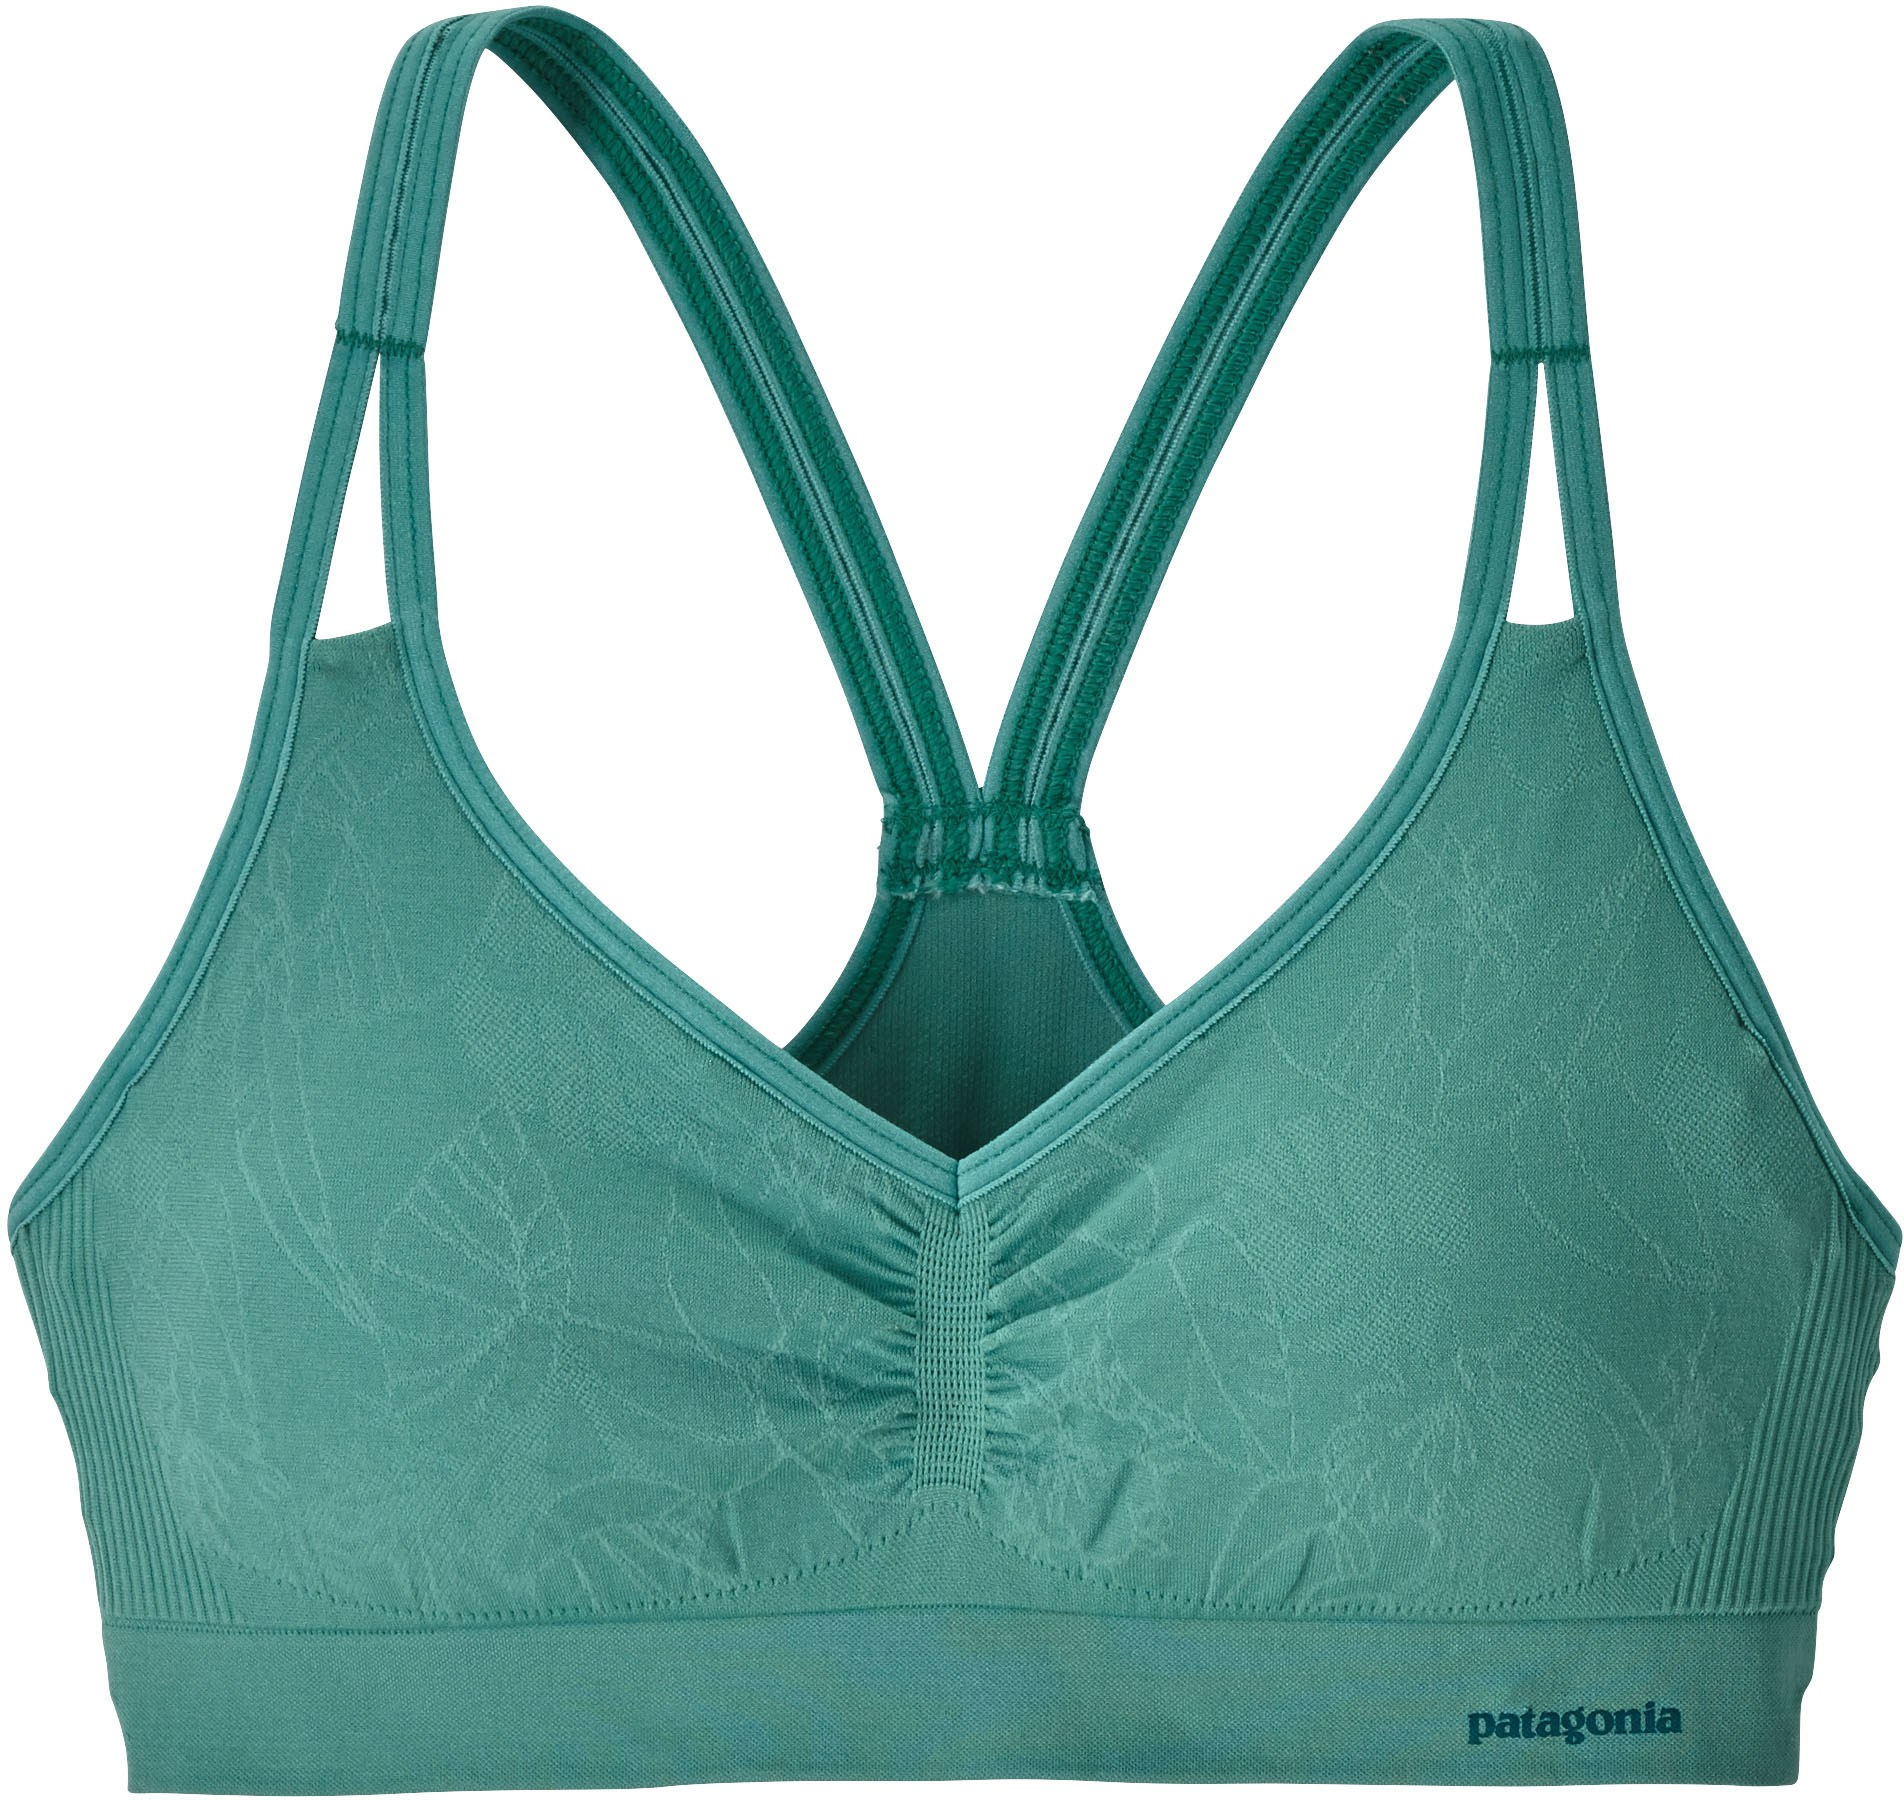 Patagonia Barely Sports Bra